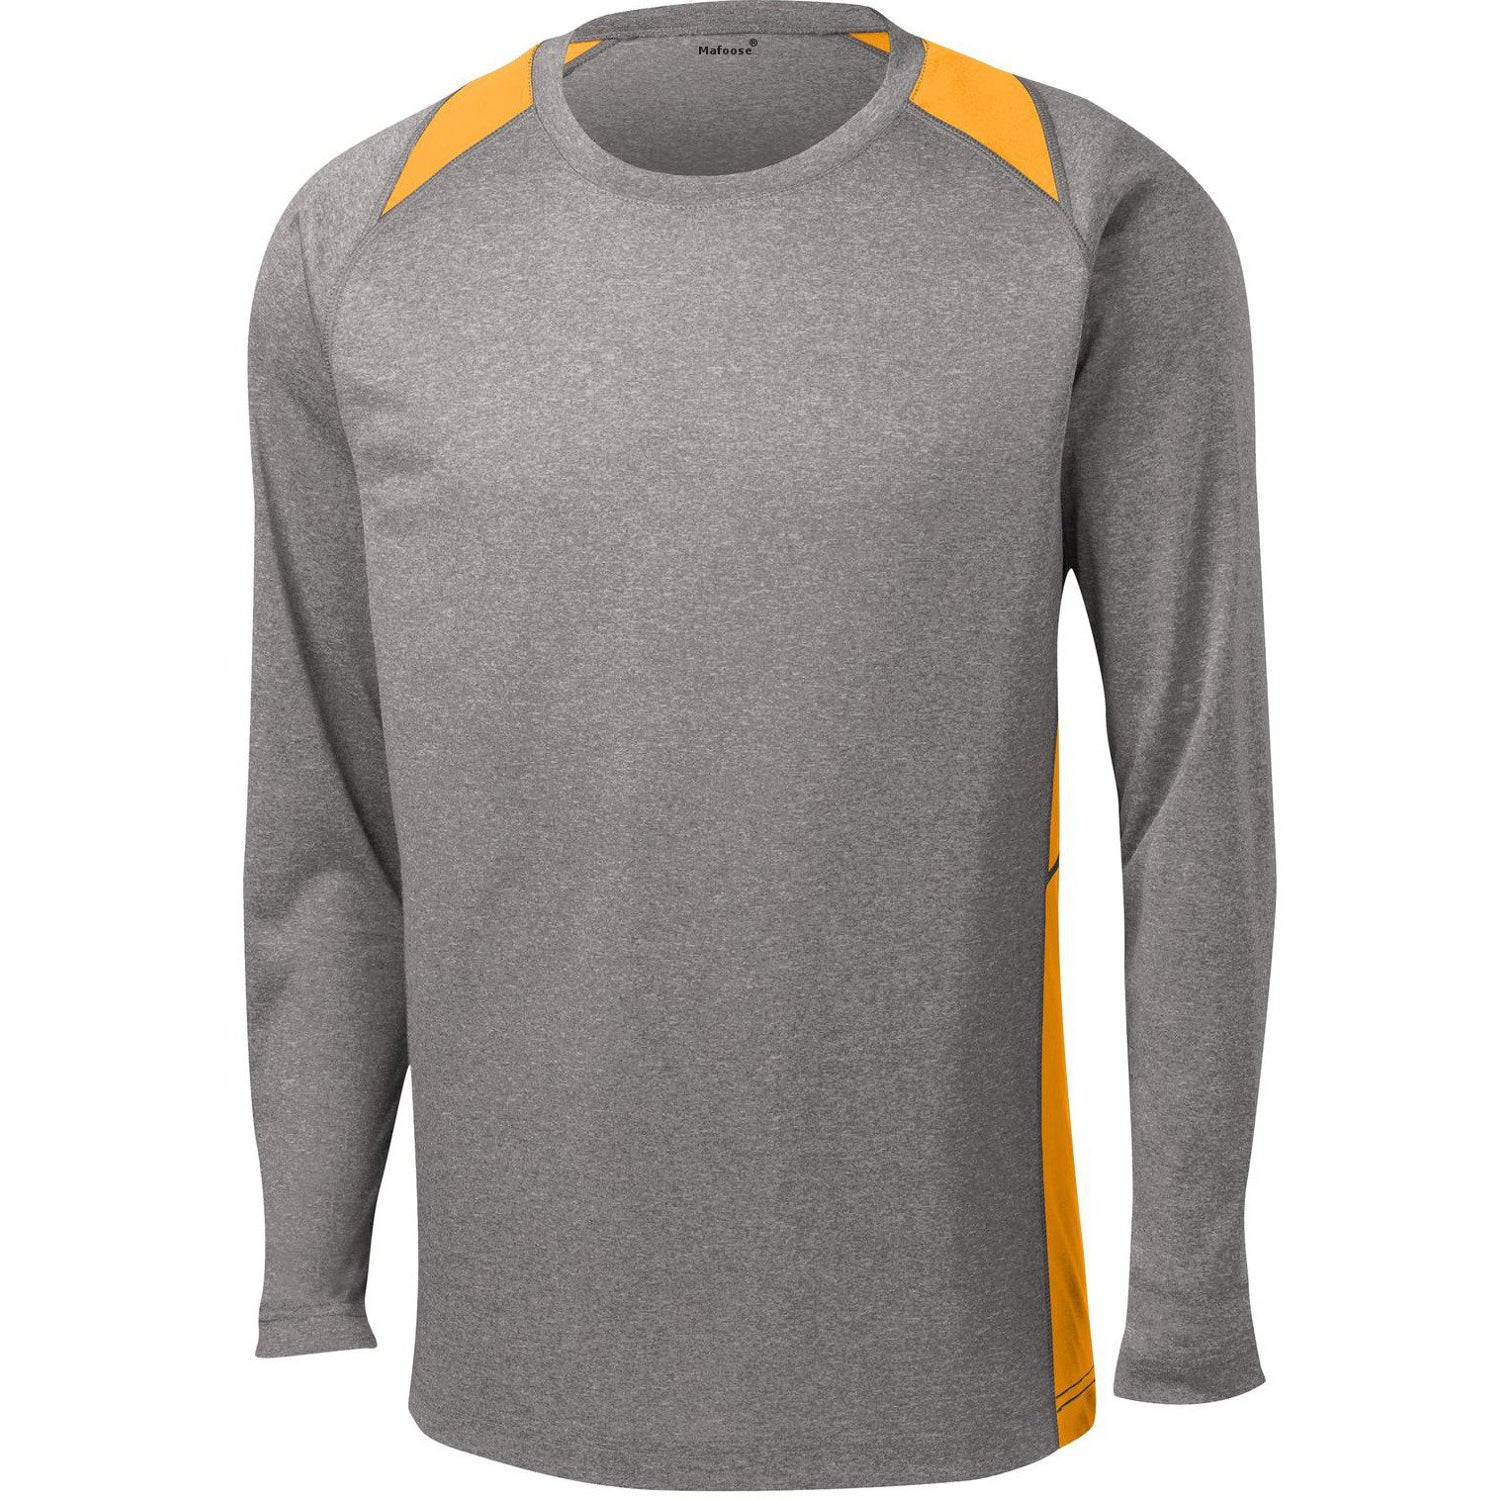 Mafoose Men's Long Sleeve Heather Colorblock Contender Tee Shirt Vintage Heather/ Gold-Front